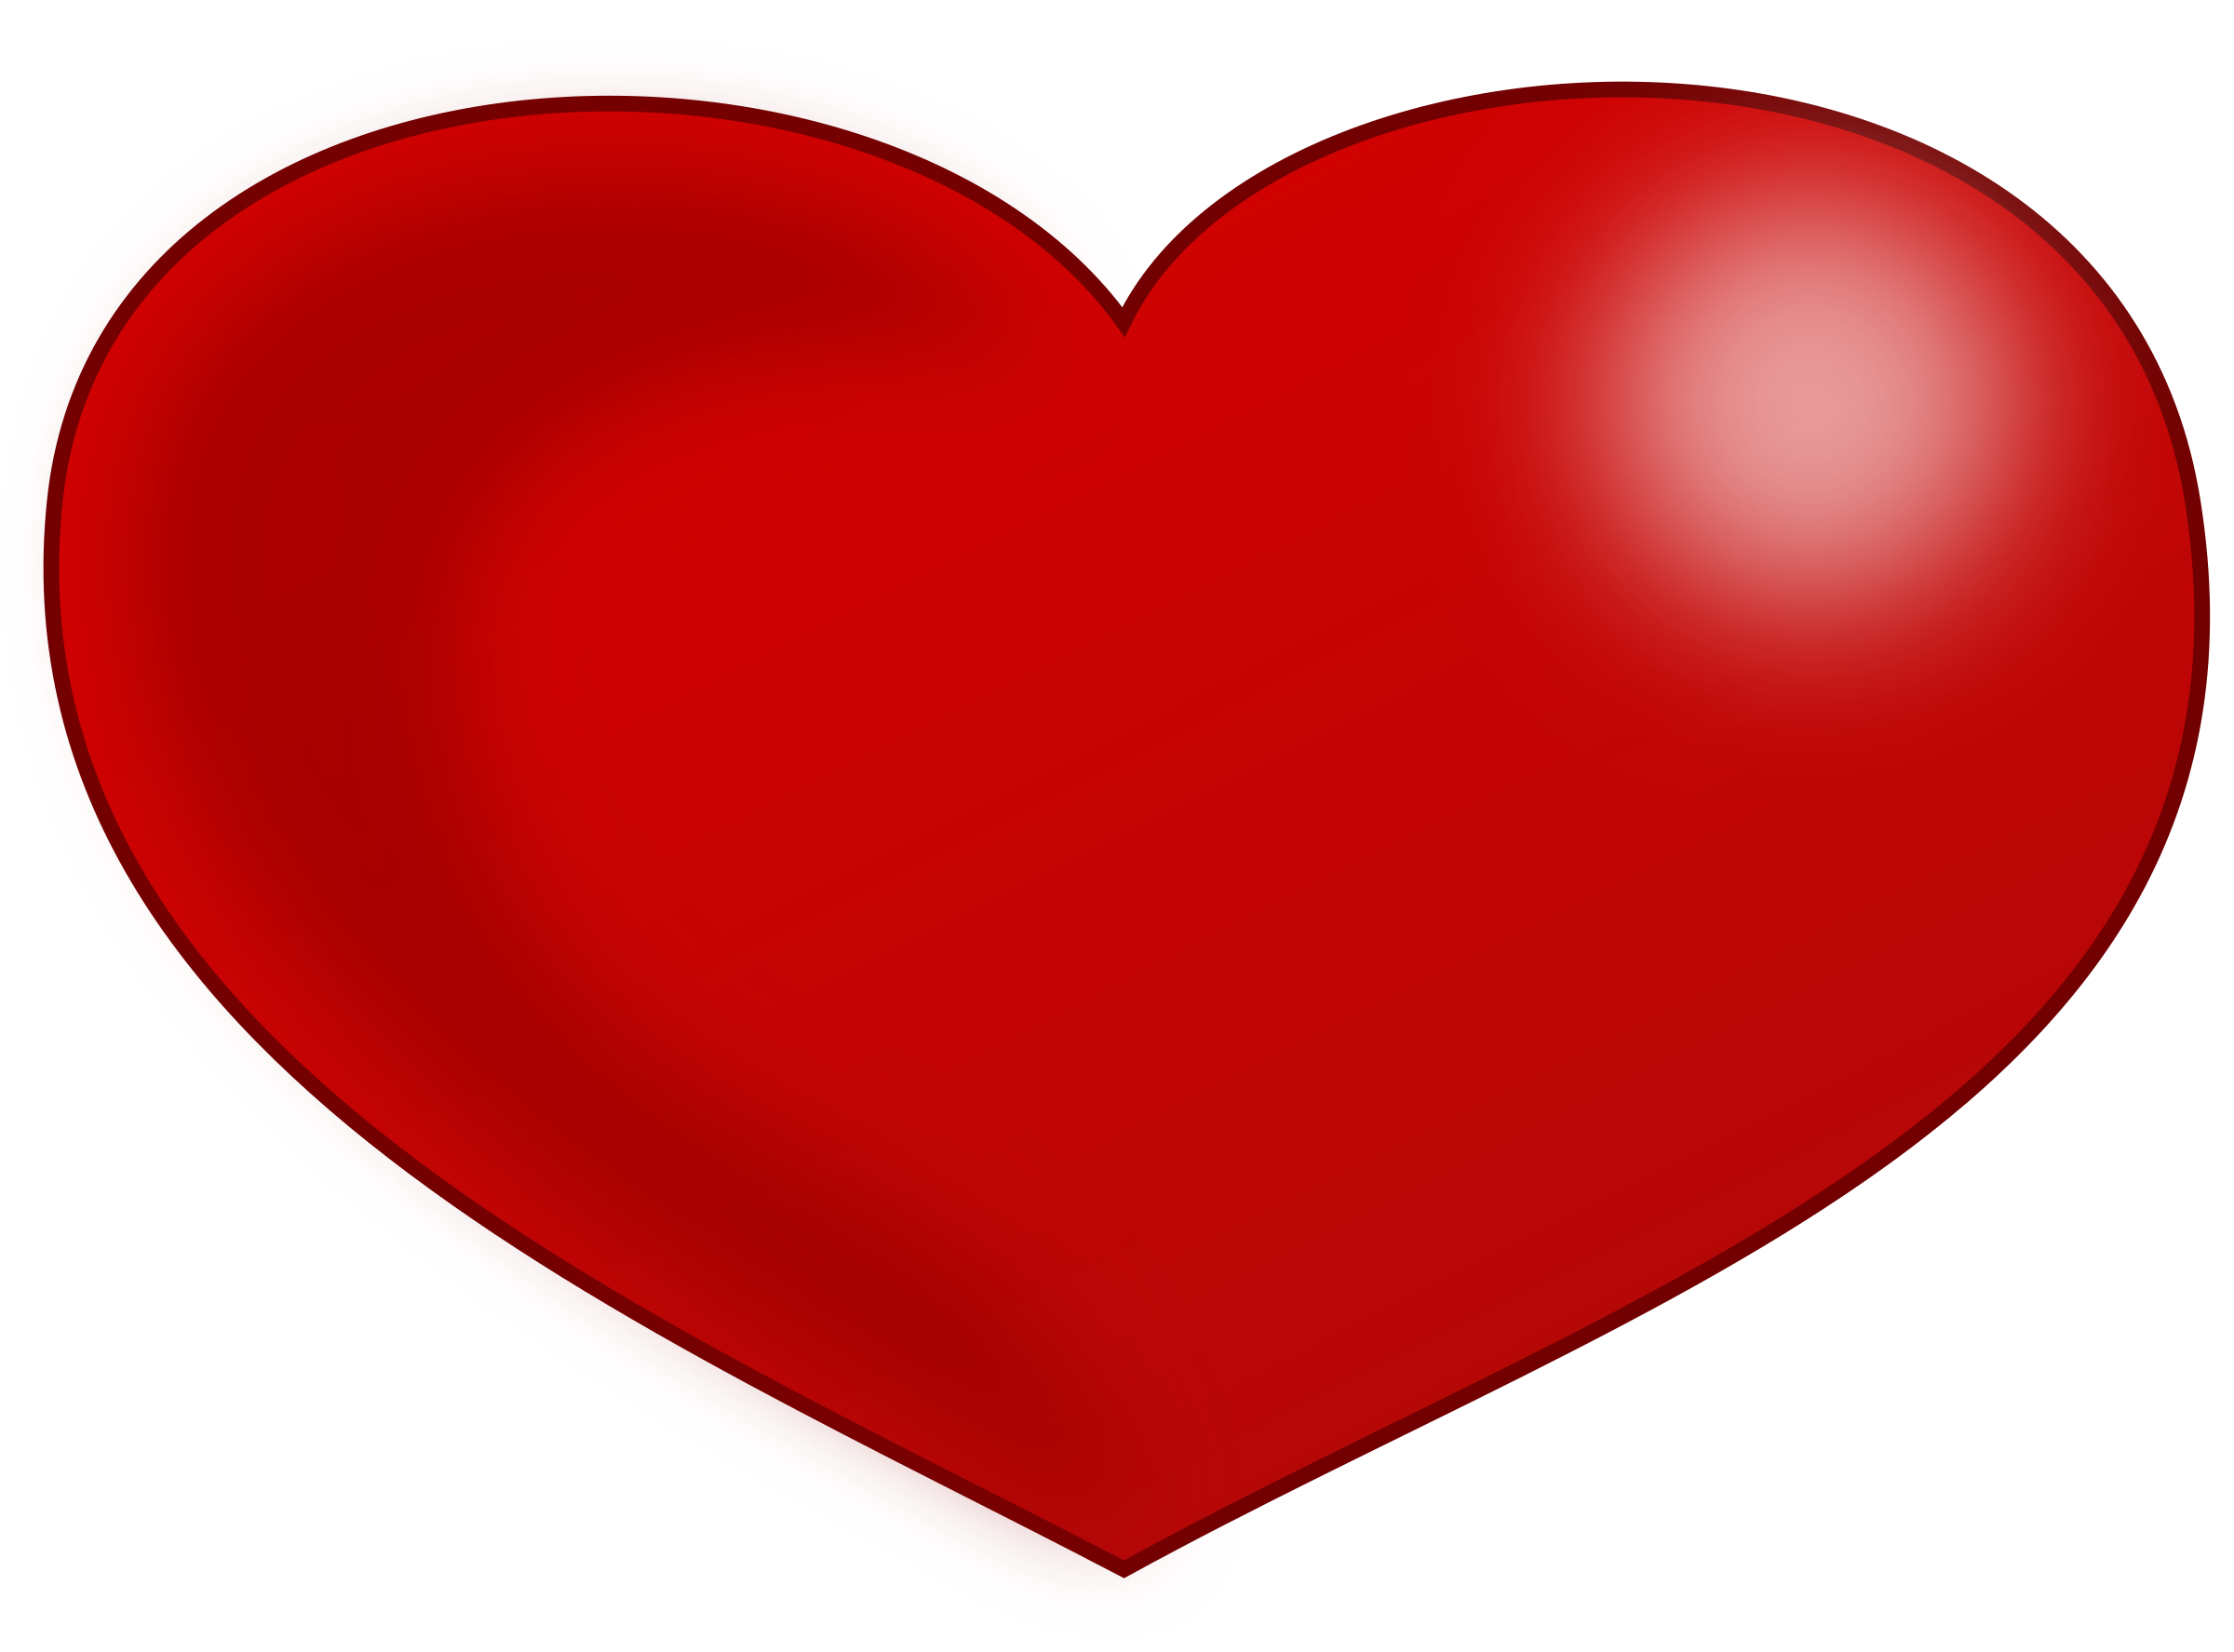 Big clipart red heart. Glossy valentine image png